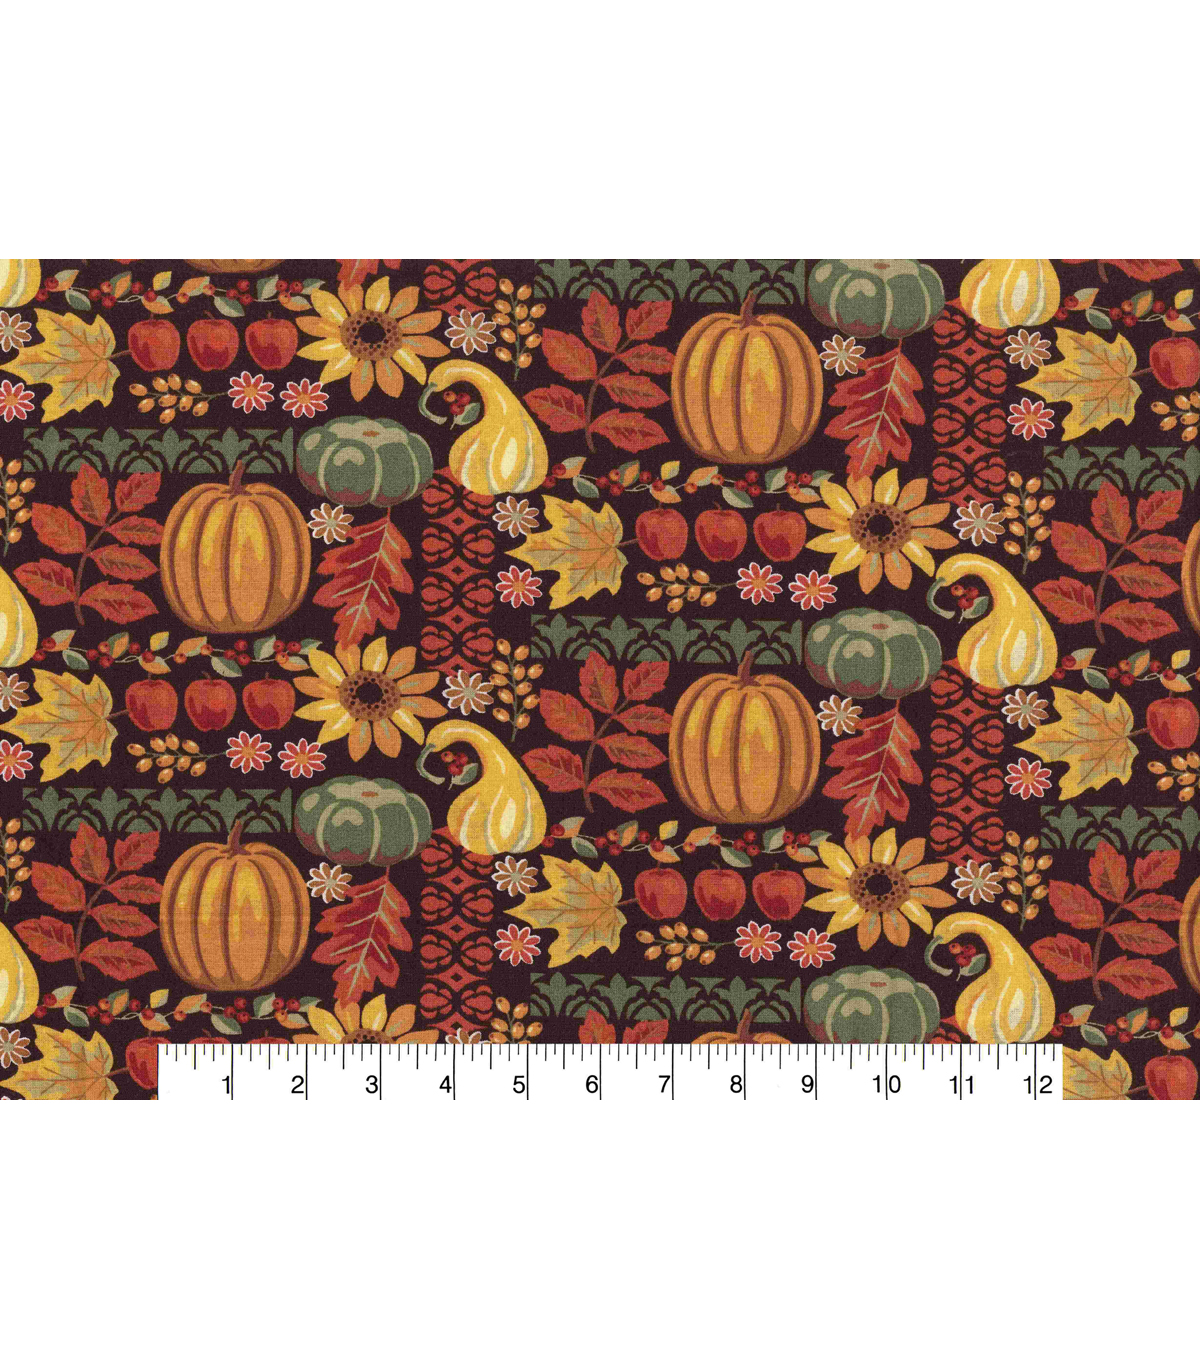 Harvest Cotton Fabric-Harvest Allover